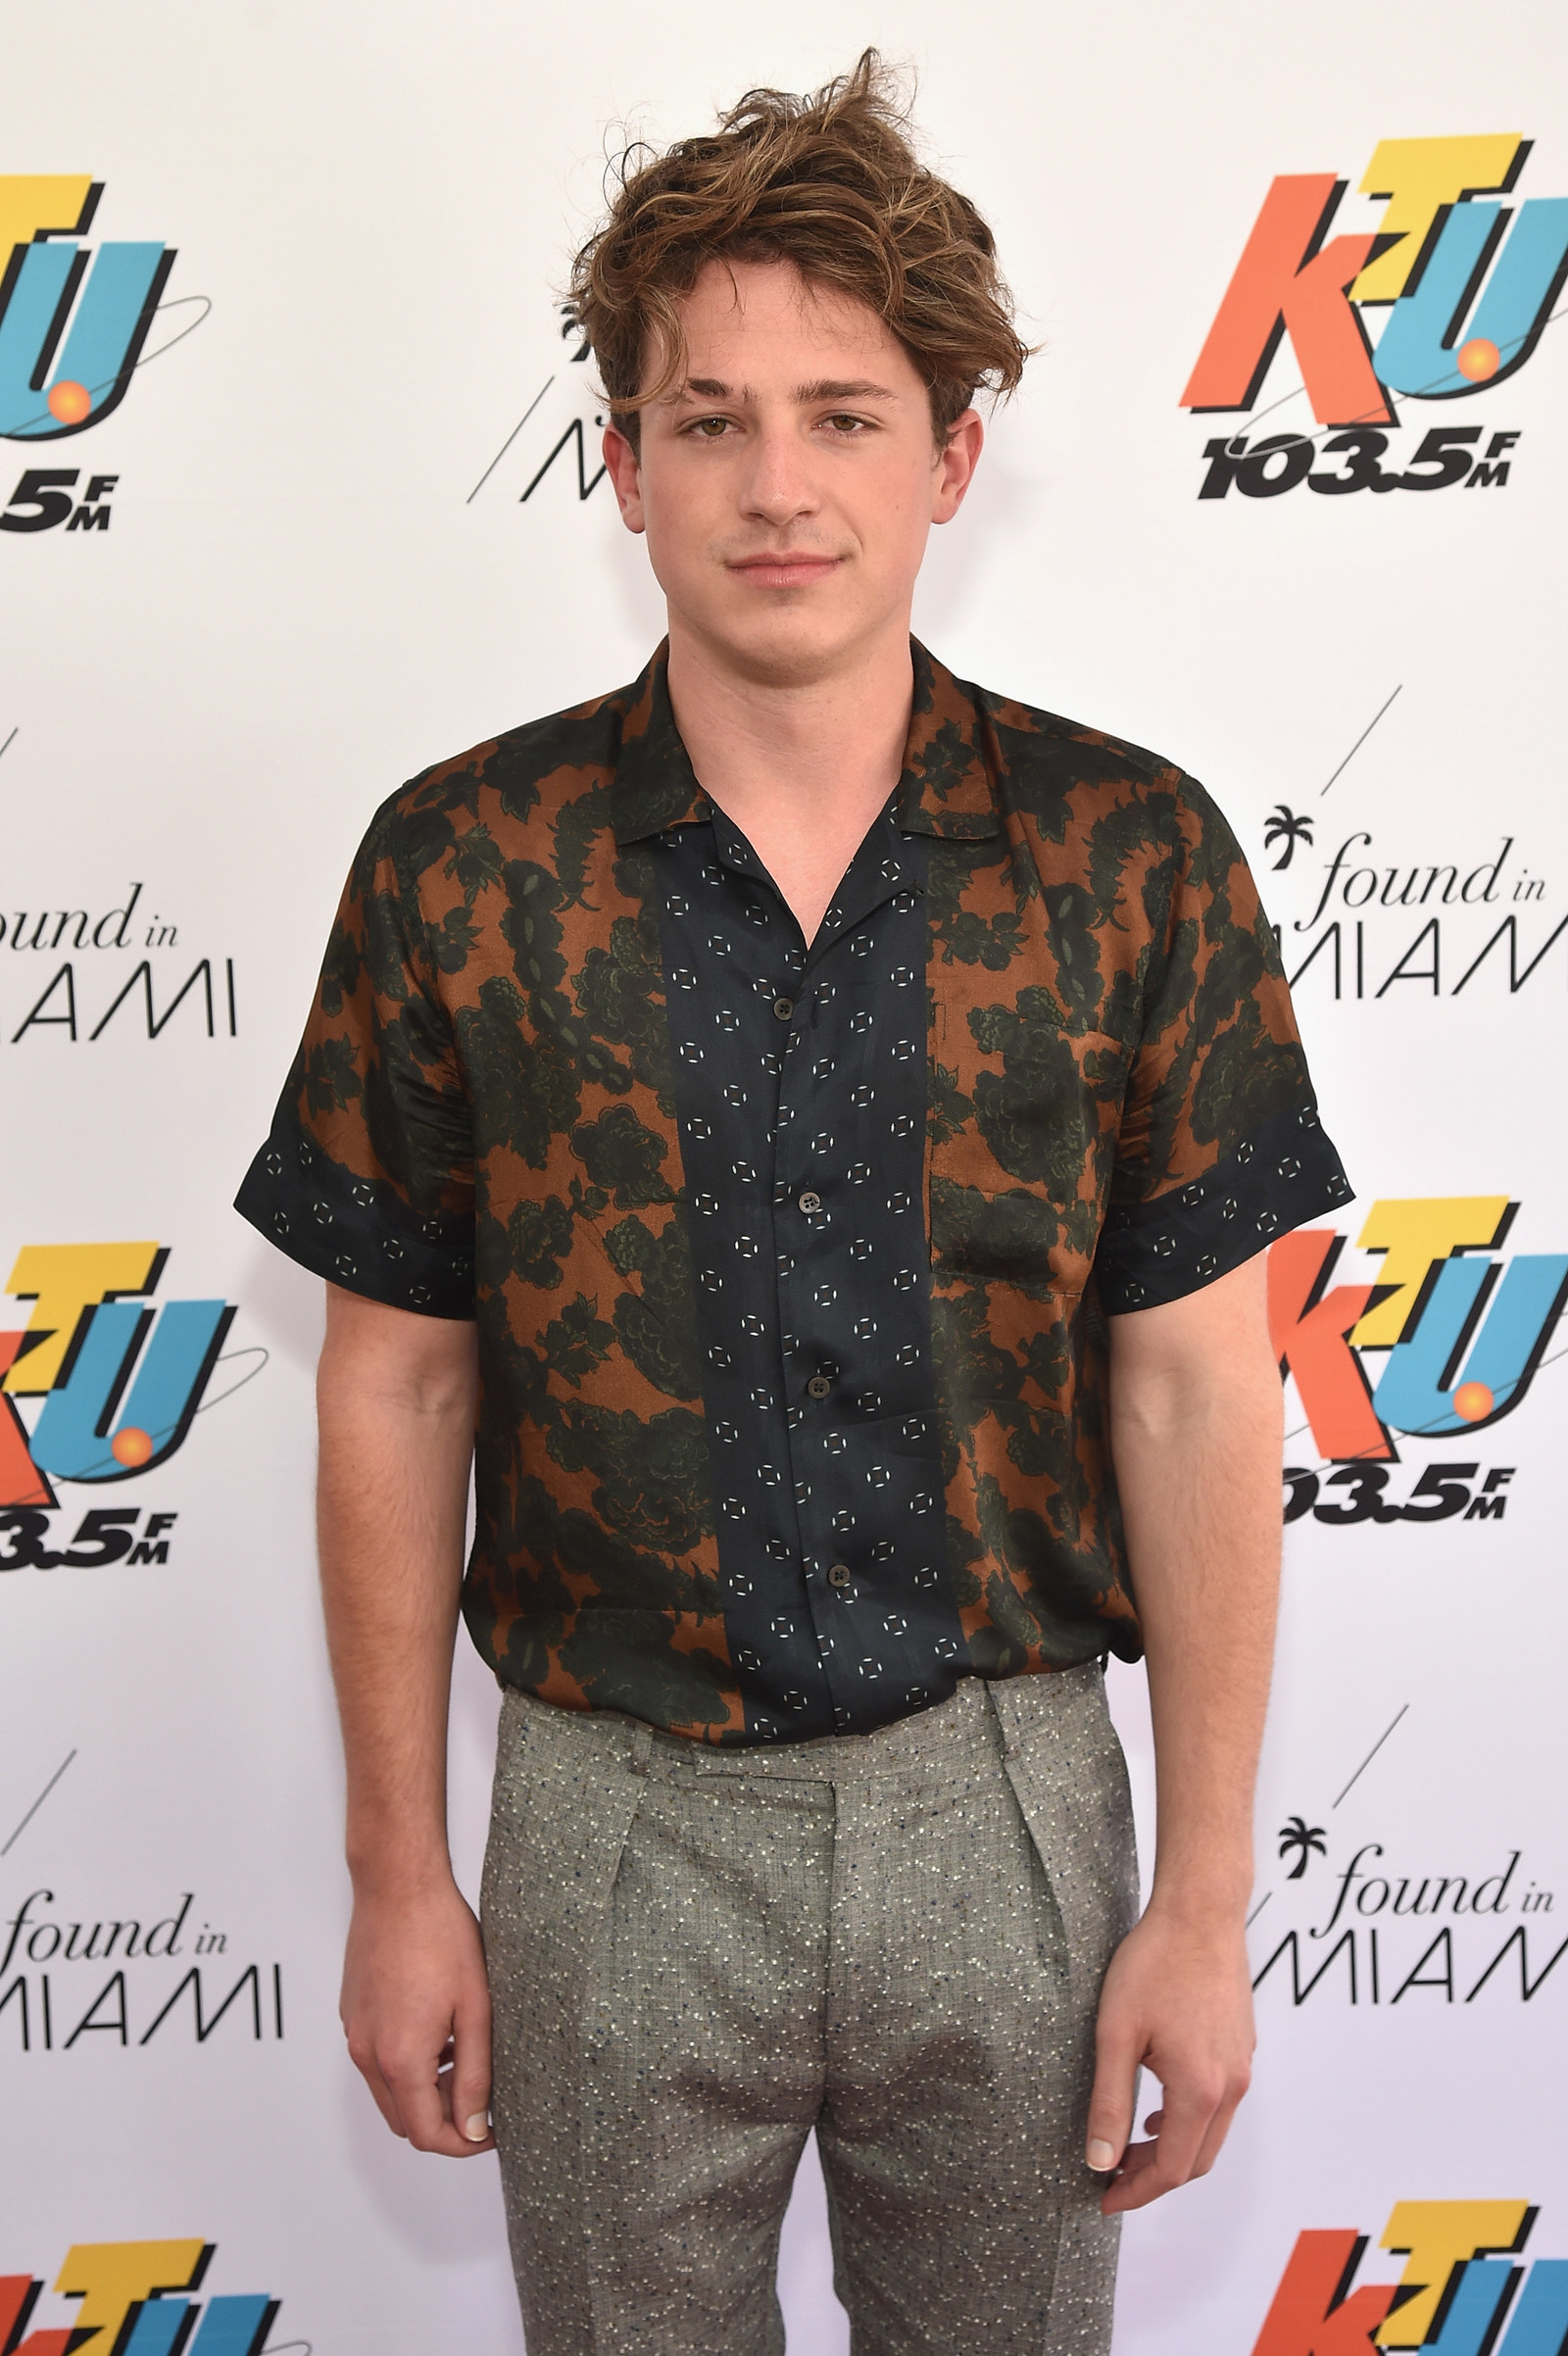 This is what Charlie Puth looks like not blonde.